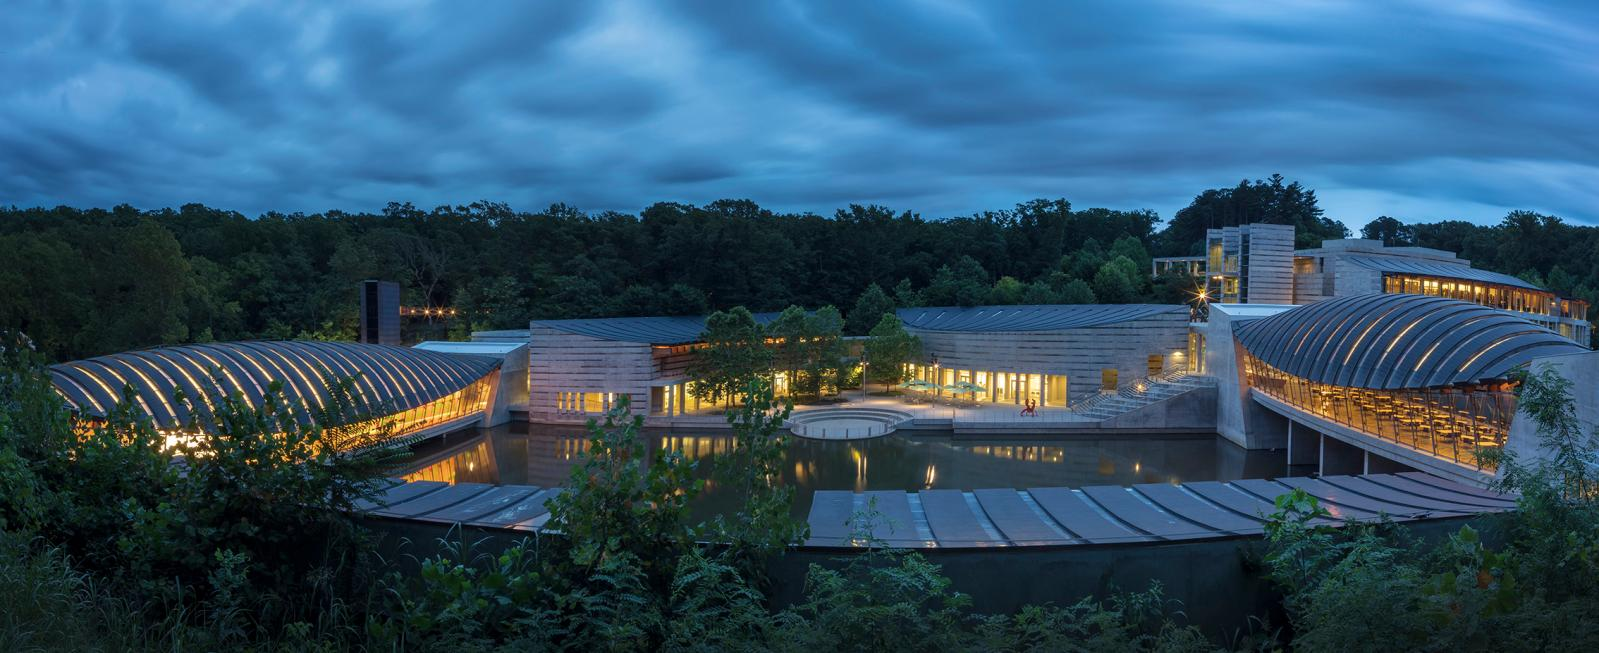 Panoramic view of Crystal Bridges Museum of American Art. Image Courtesy of Crystal Bridges Museum of American Art